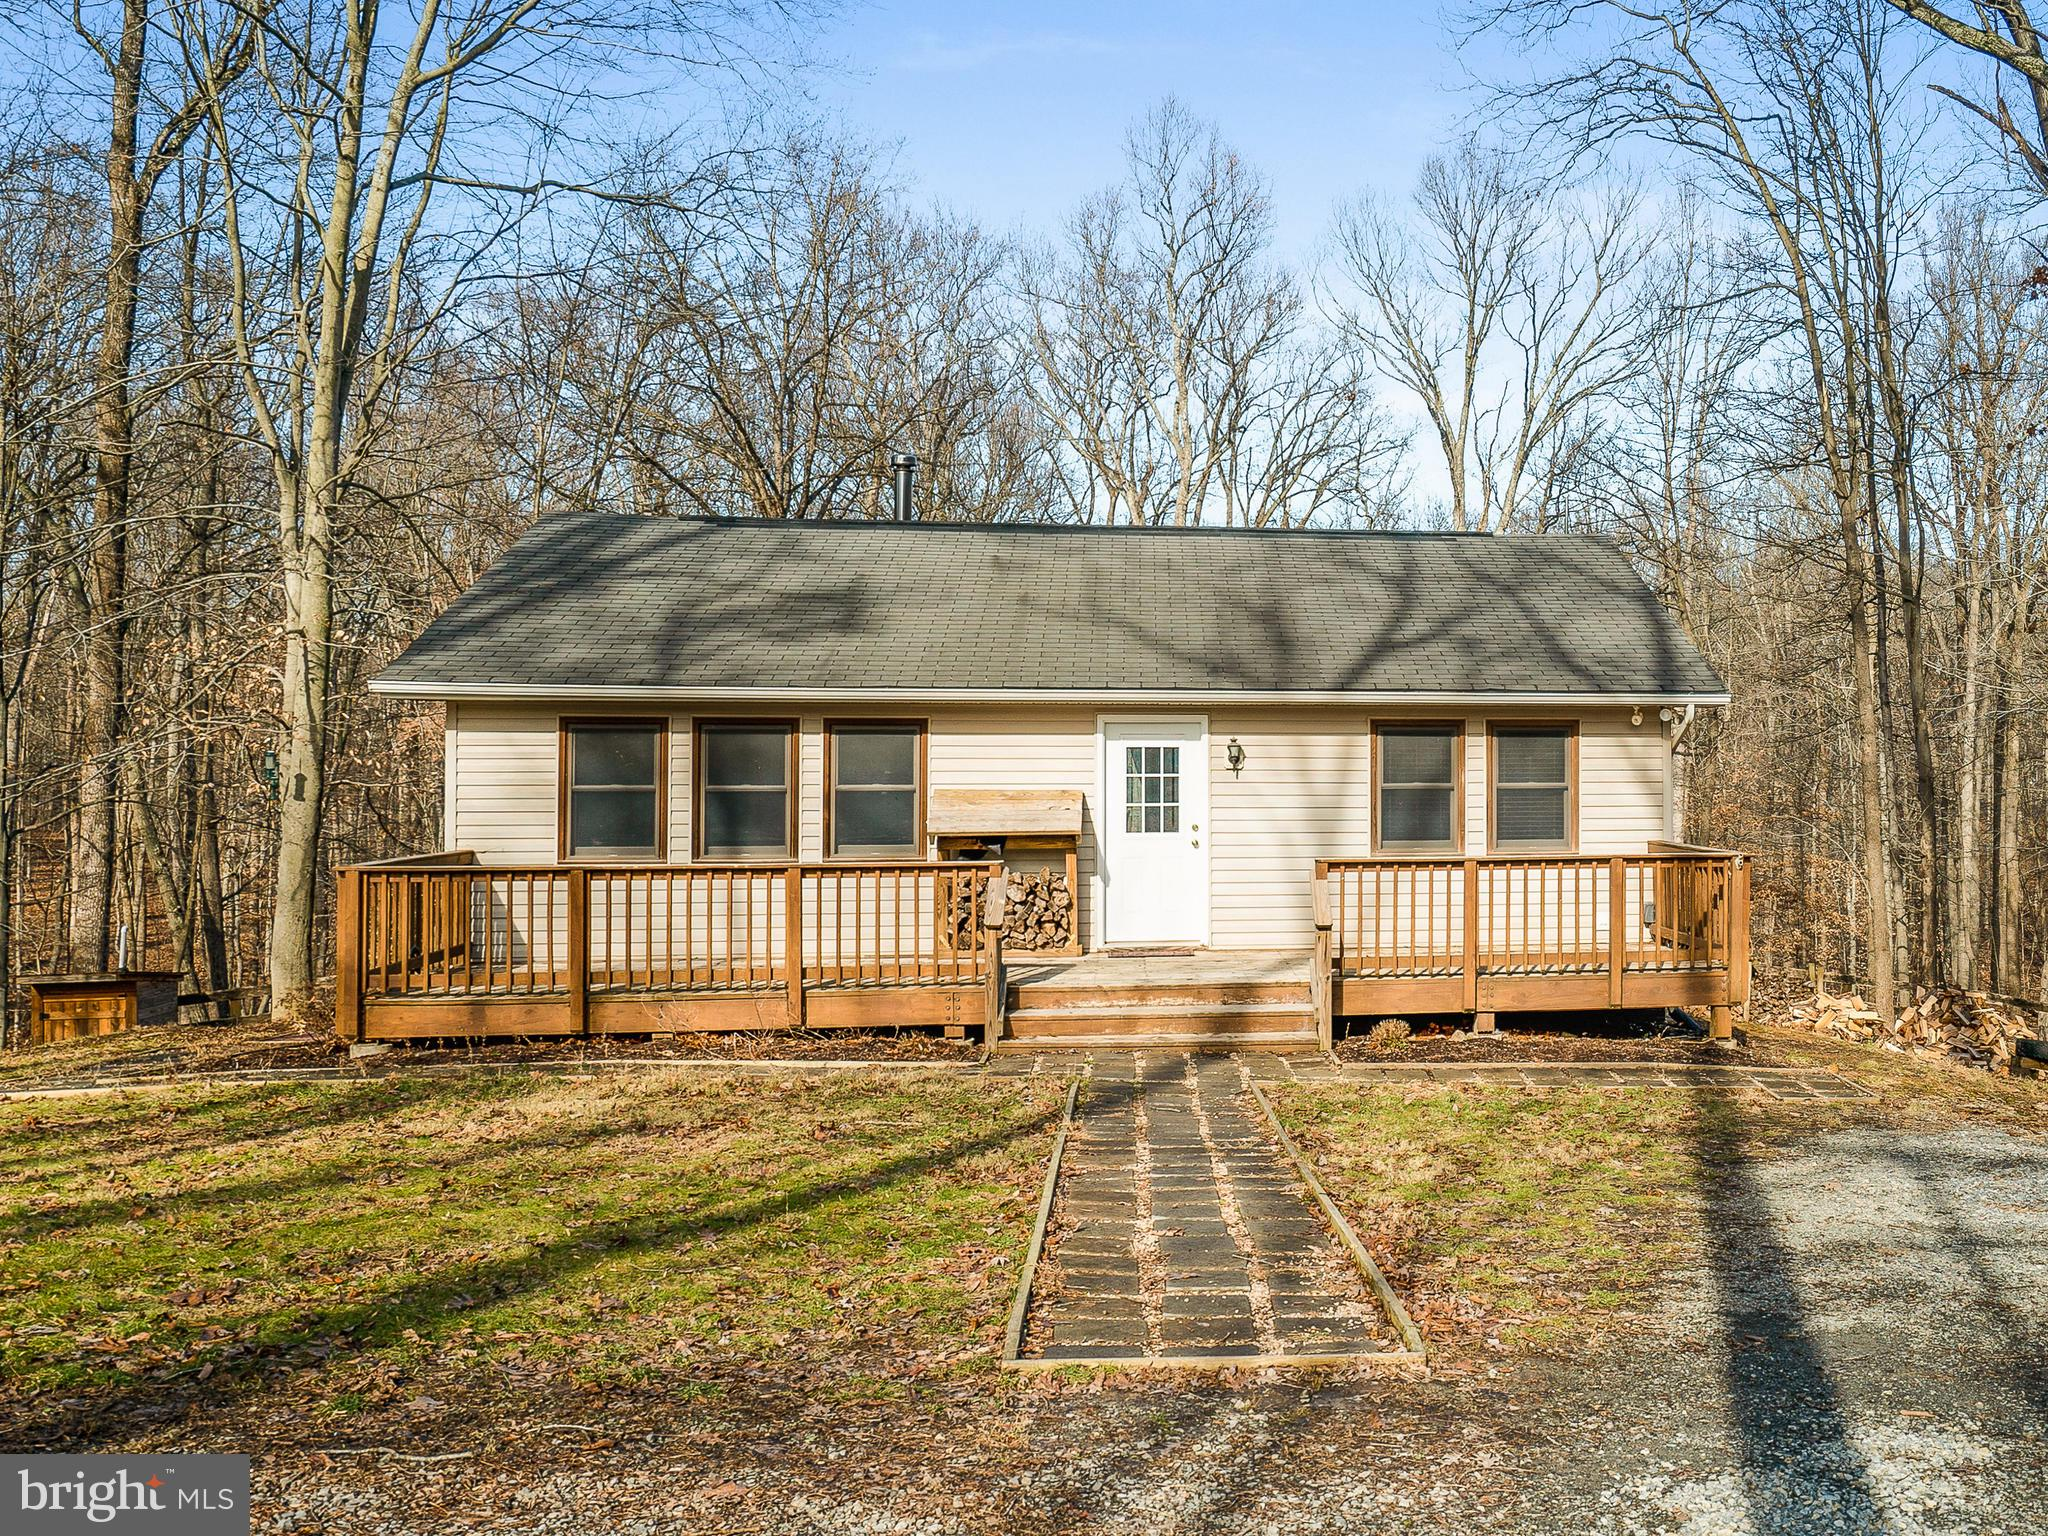 Nicely updated 1 bedroom 1 bath home.  Many upgrades and over 8 acres of usable property.  Comes wit